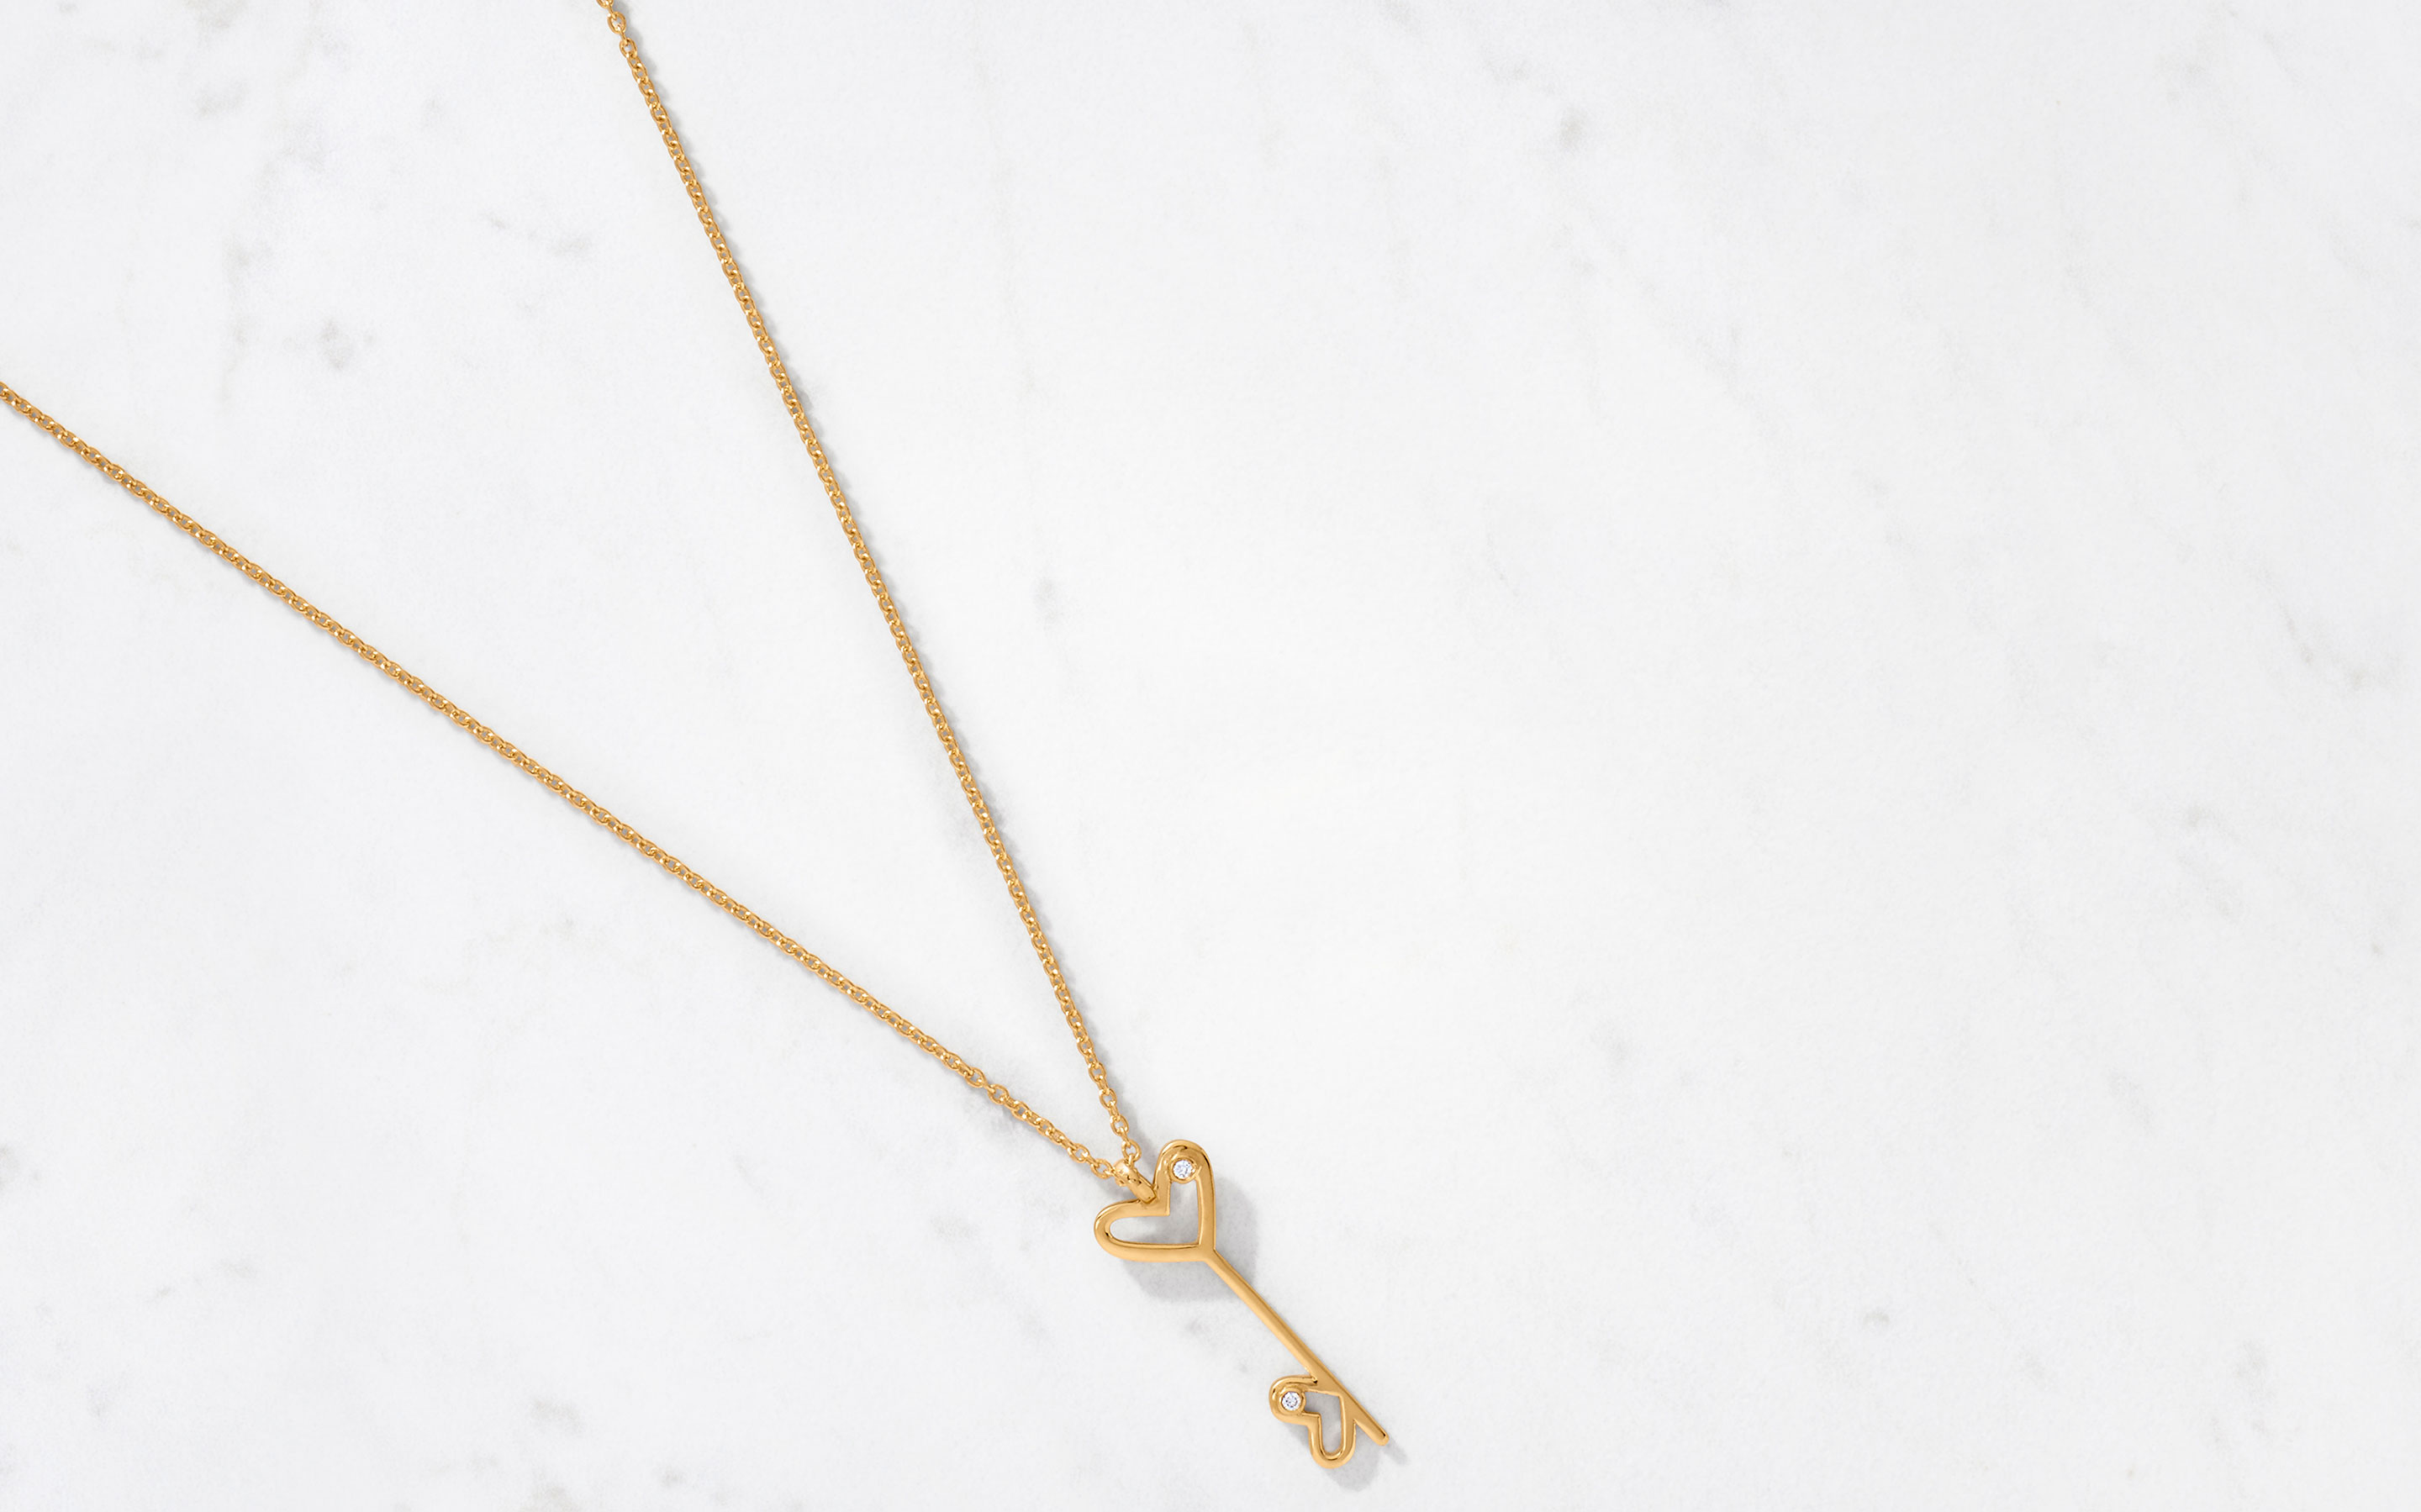 22 karat gold necklace with whimsical double heart charm in polished finish